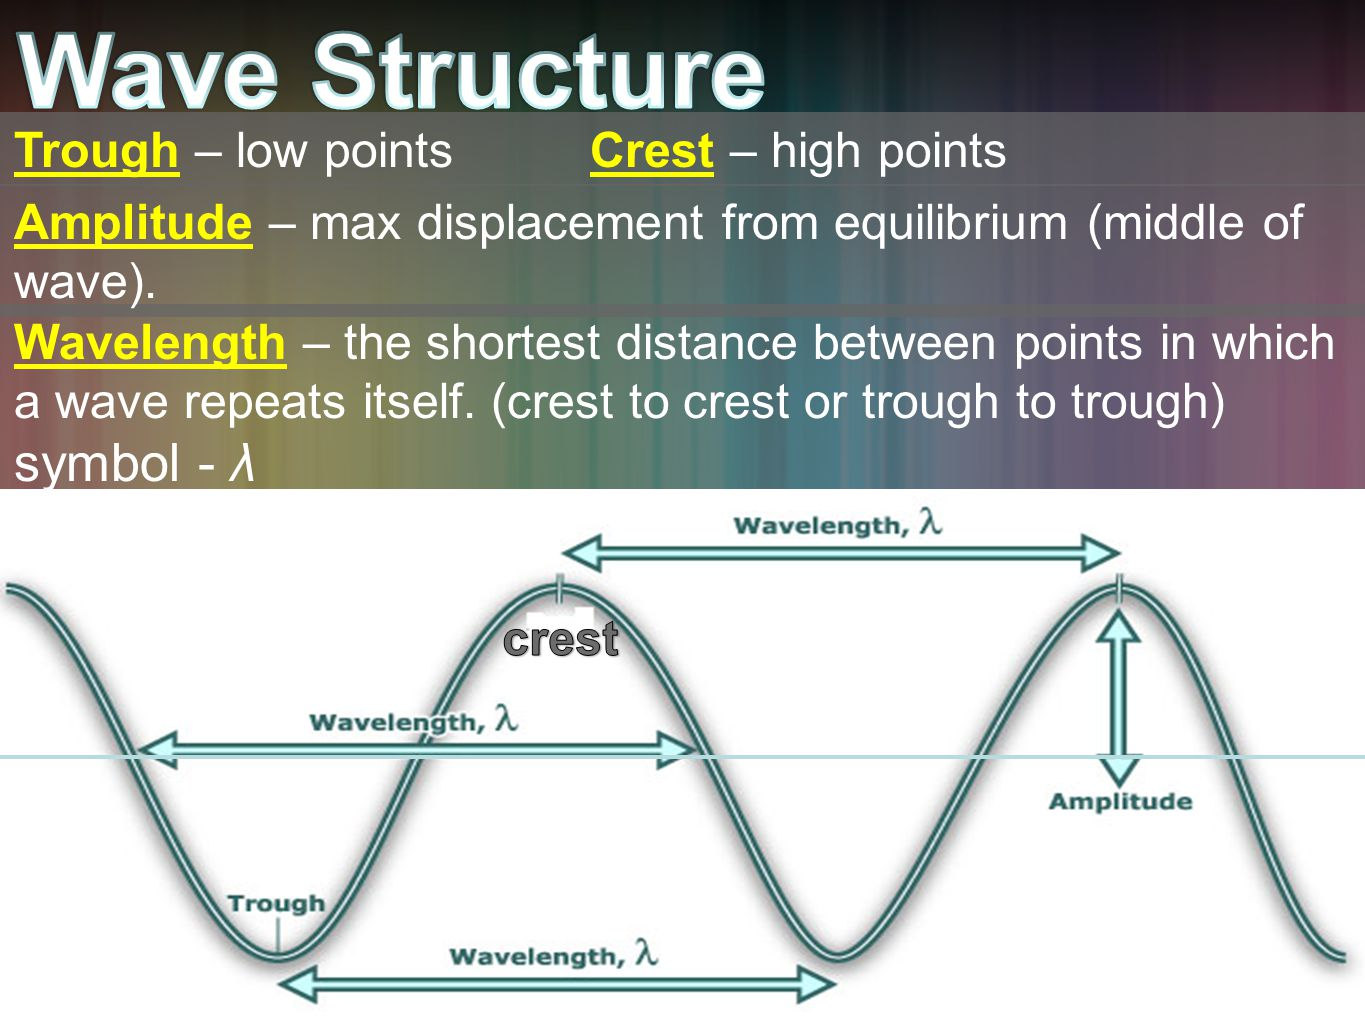 Trough – low pointsCrest – high points Wavelength – the shortest distance between points in which a wave repeats itself.